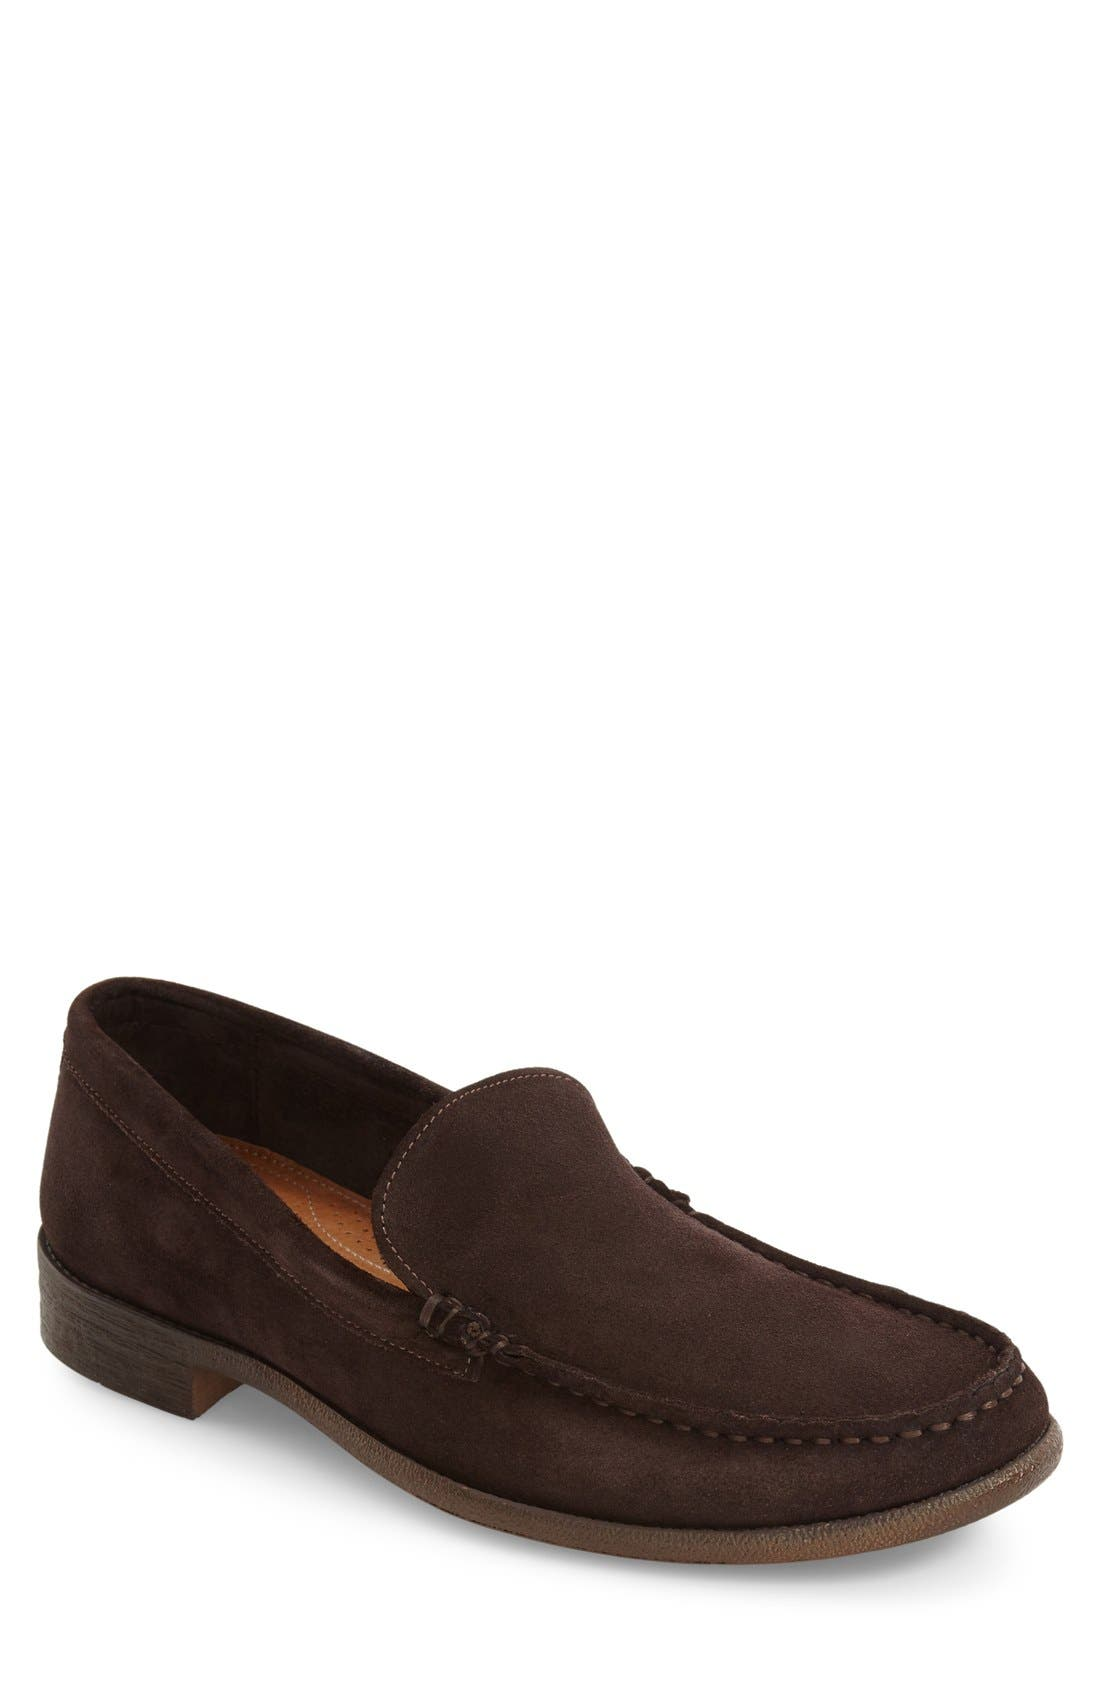 Maine Loafer, Main, color, 201